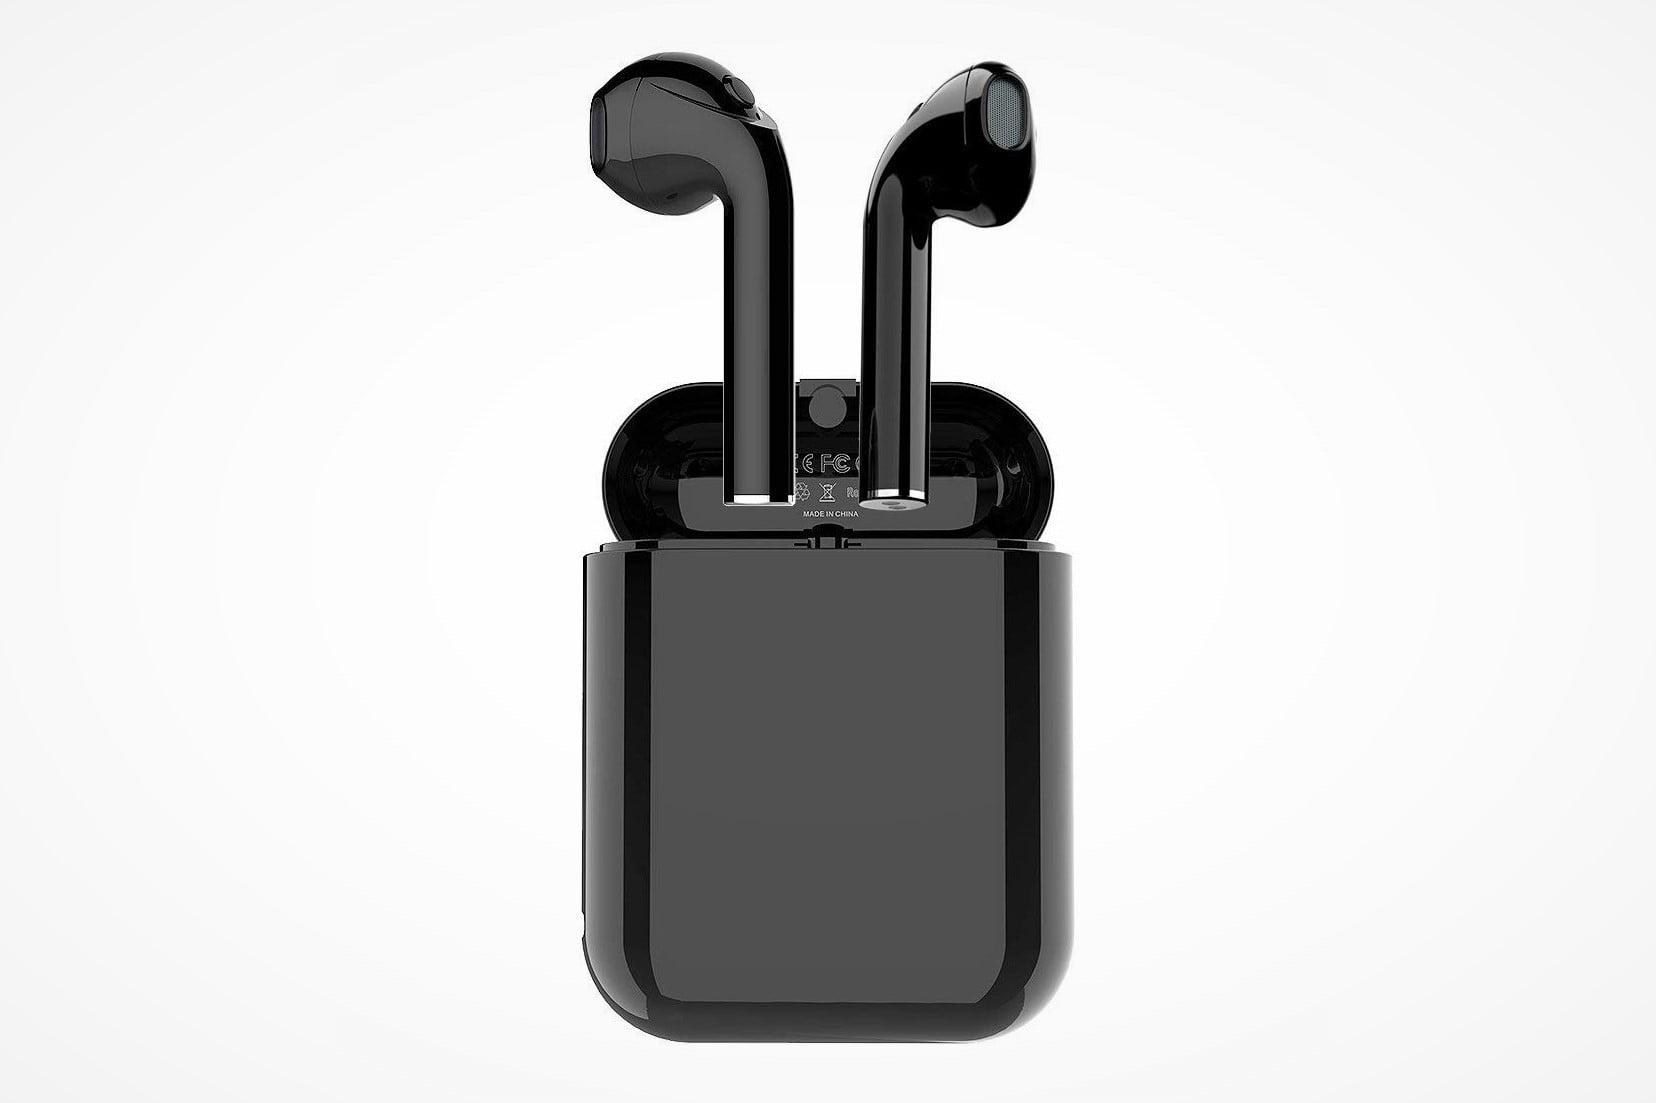 Apple's next AirPod case could be waterproof and let you recharge an Apple Watch